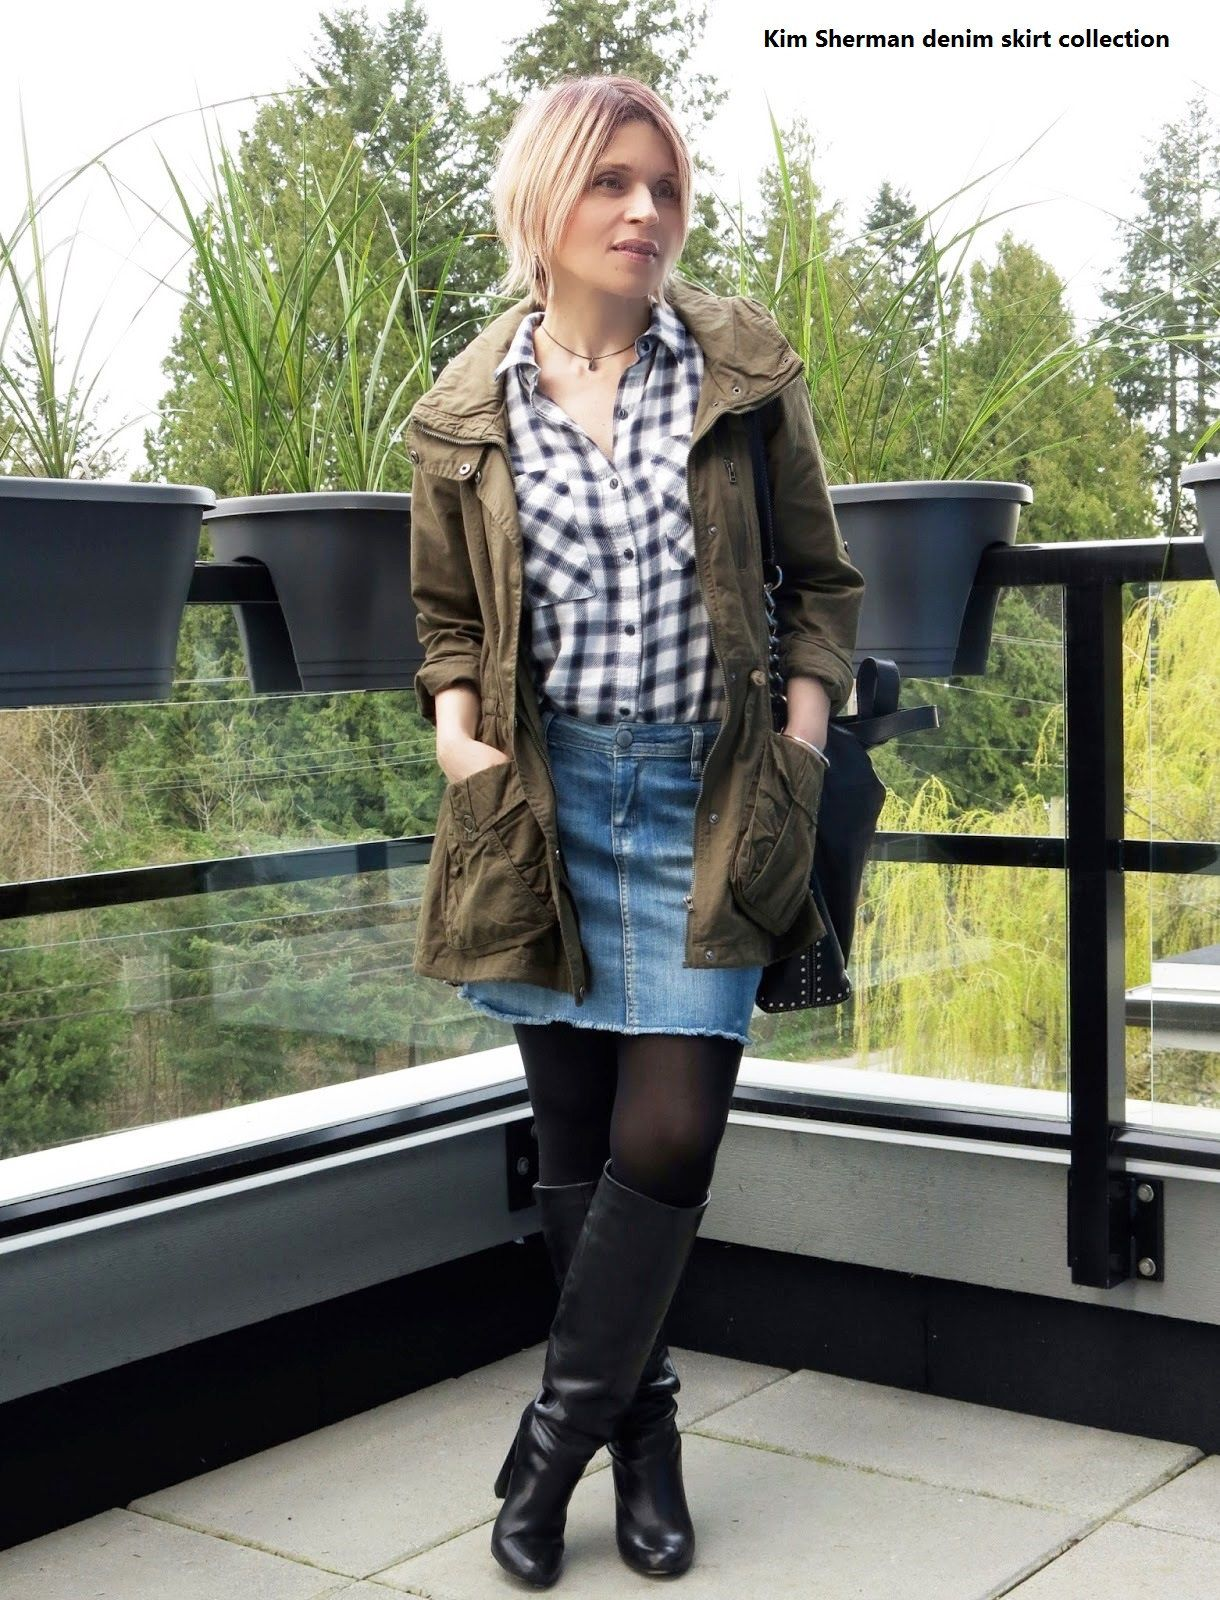 to wear - Mini denim skirt and boots video